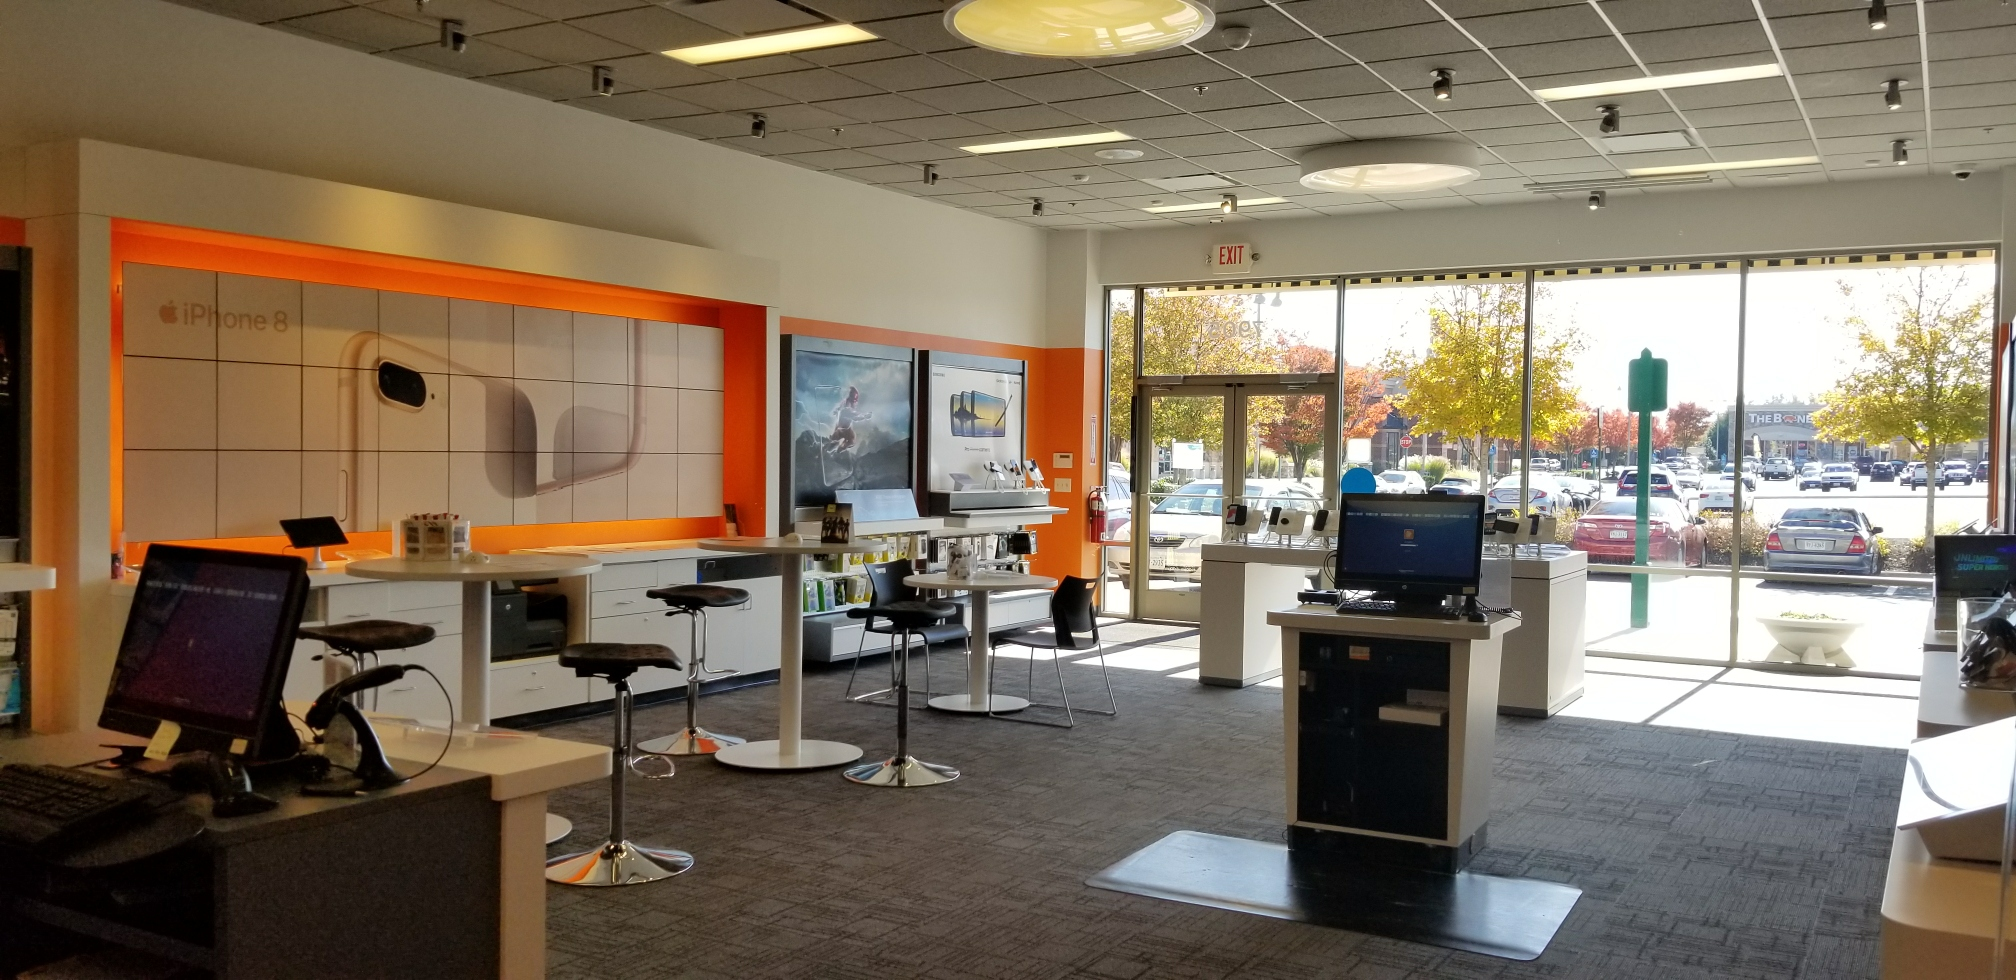 AT&T Store image 3